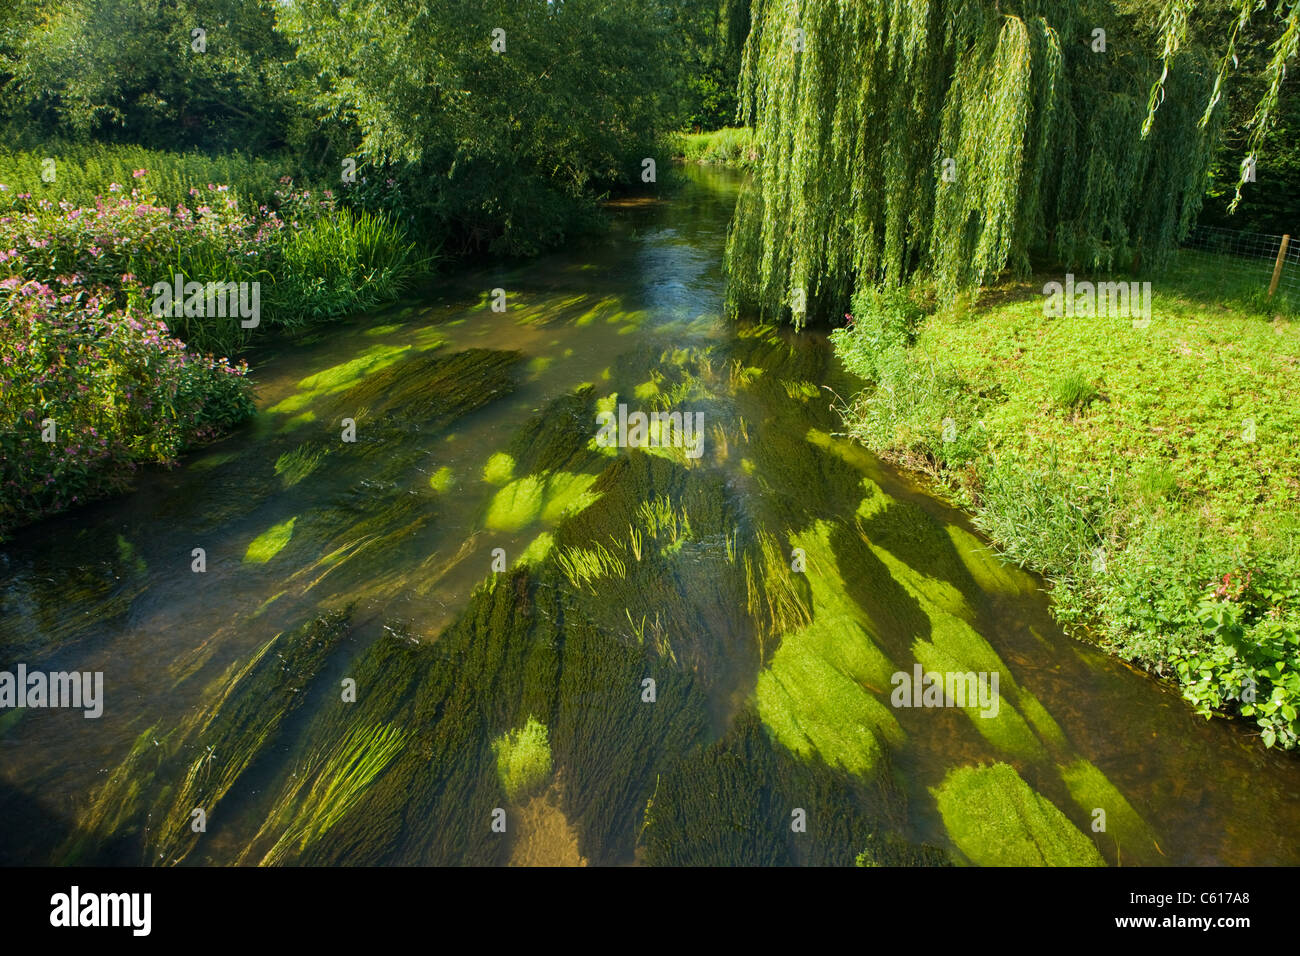 Vibrant growth in River Wey at Elstead, Surrey, UK. - Stock Image